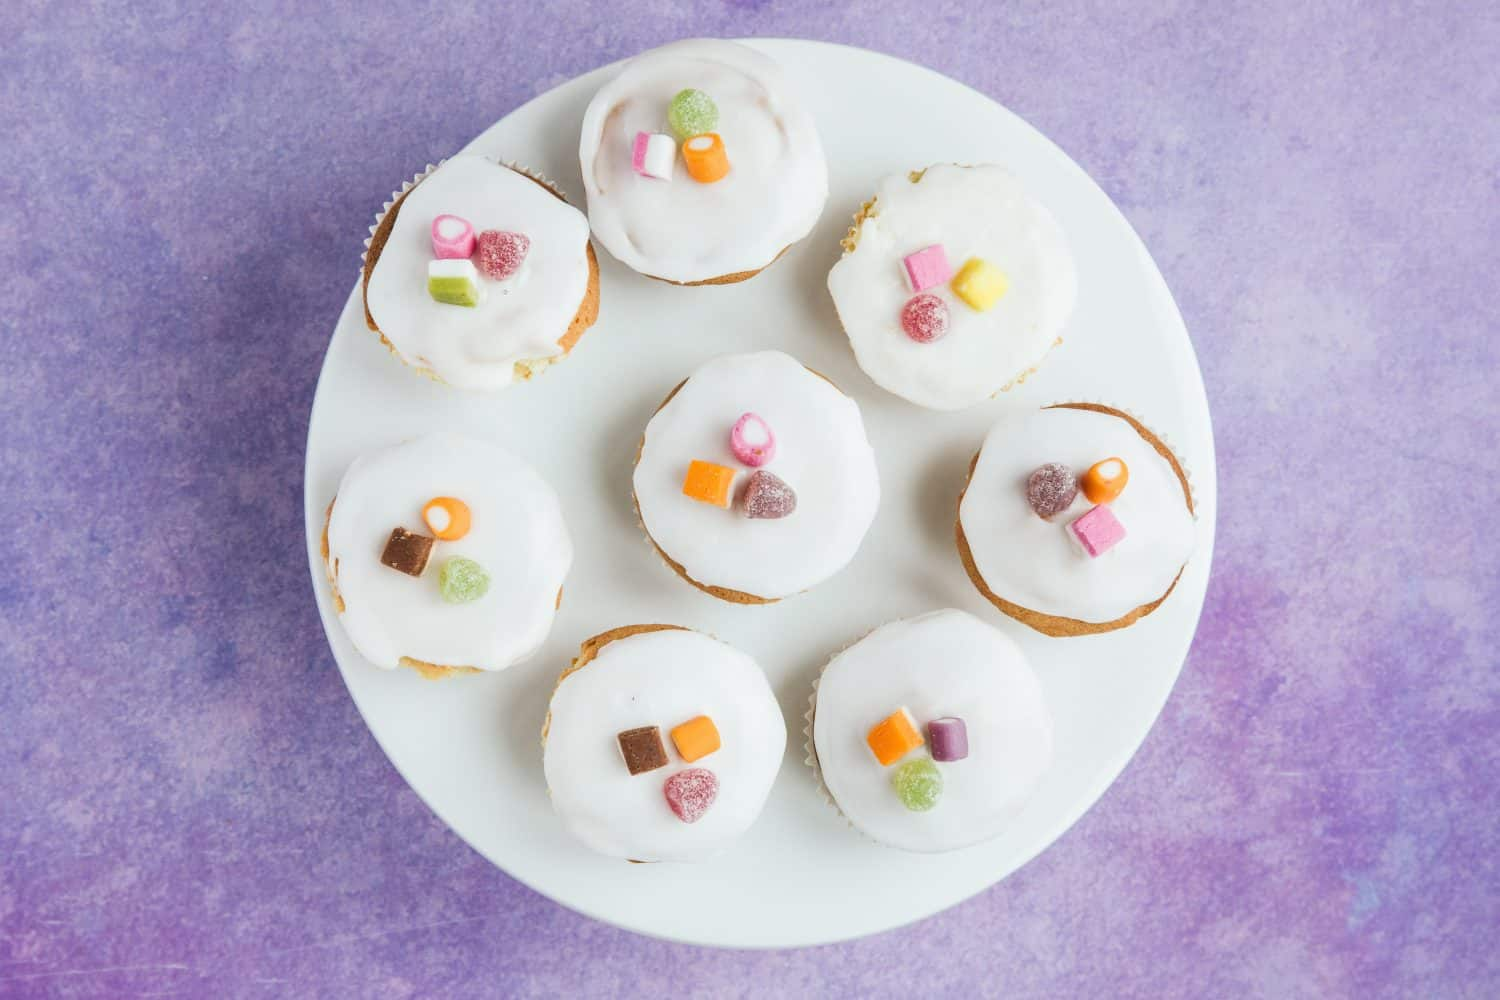 A white cake stand with 8 fairy cakes on top.